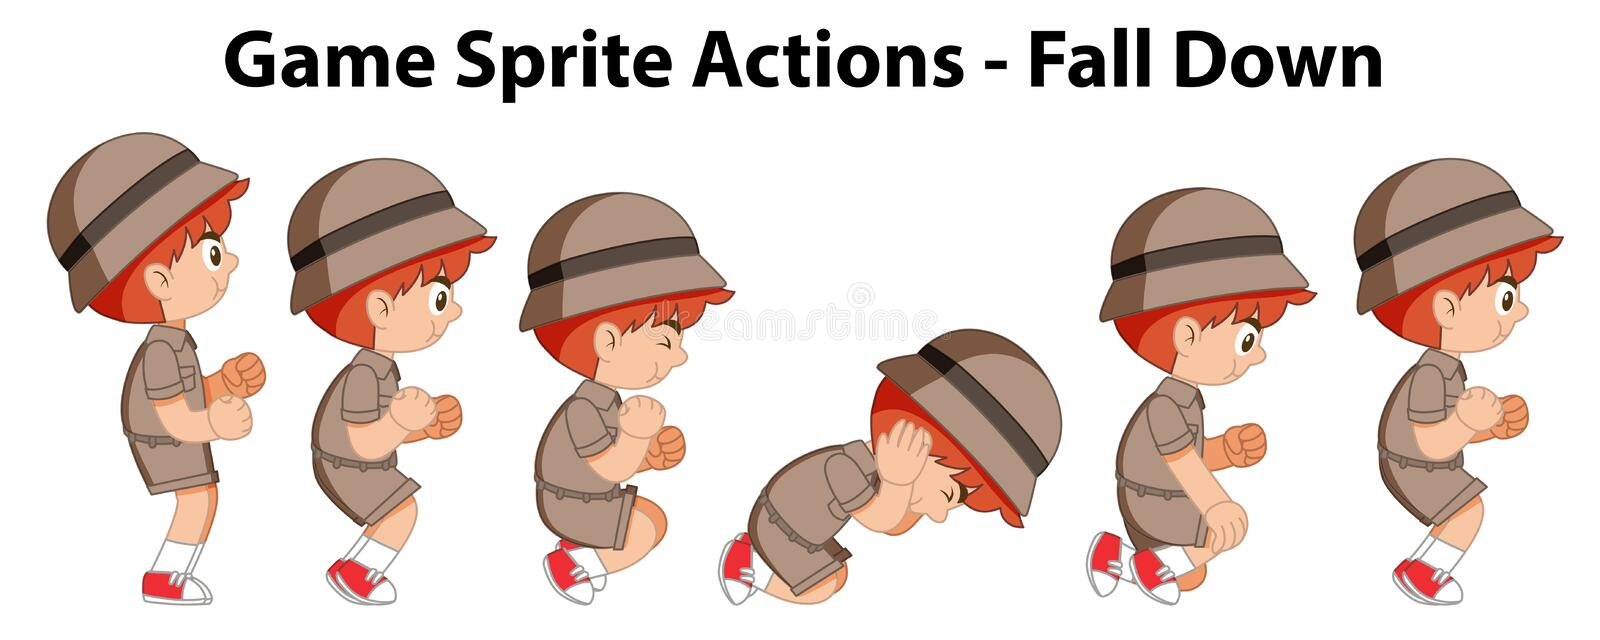 Game sprite actions - fall down vector illustration